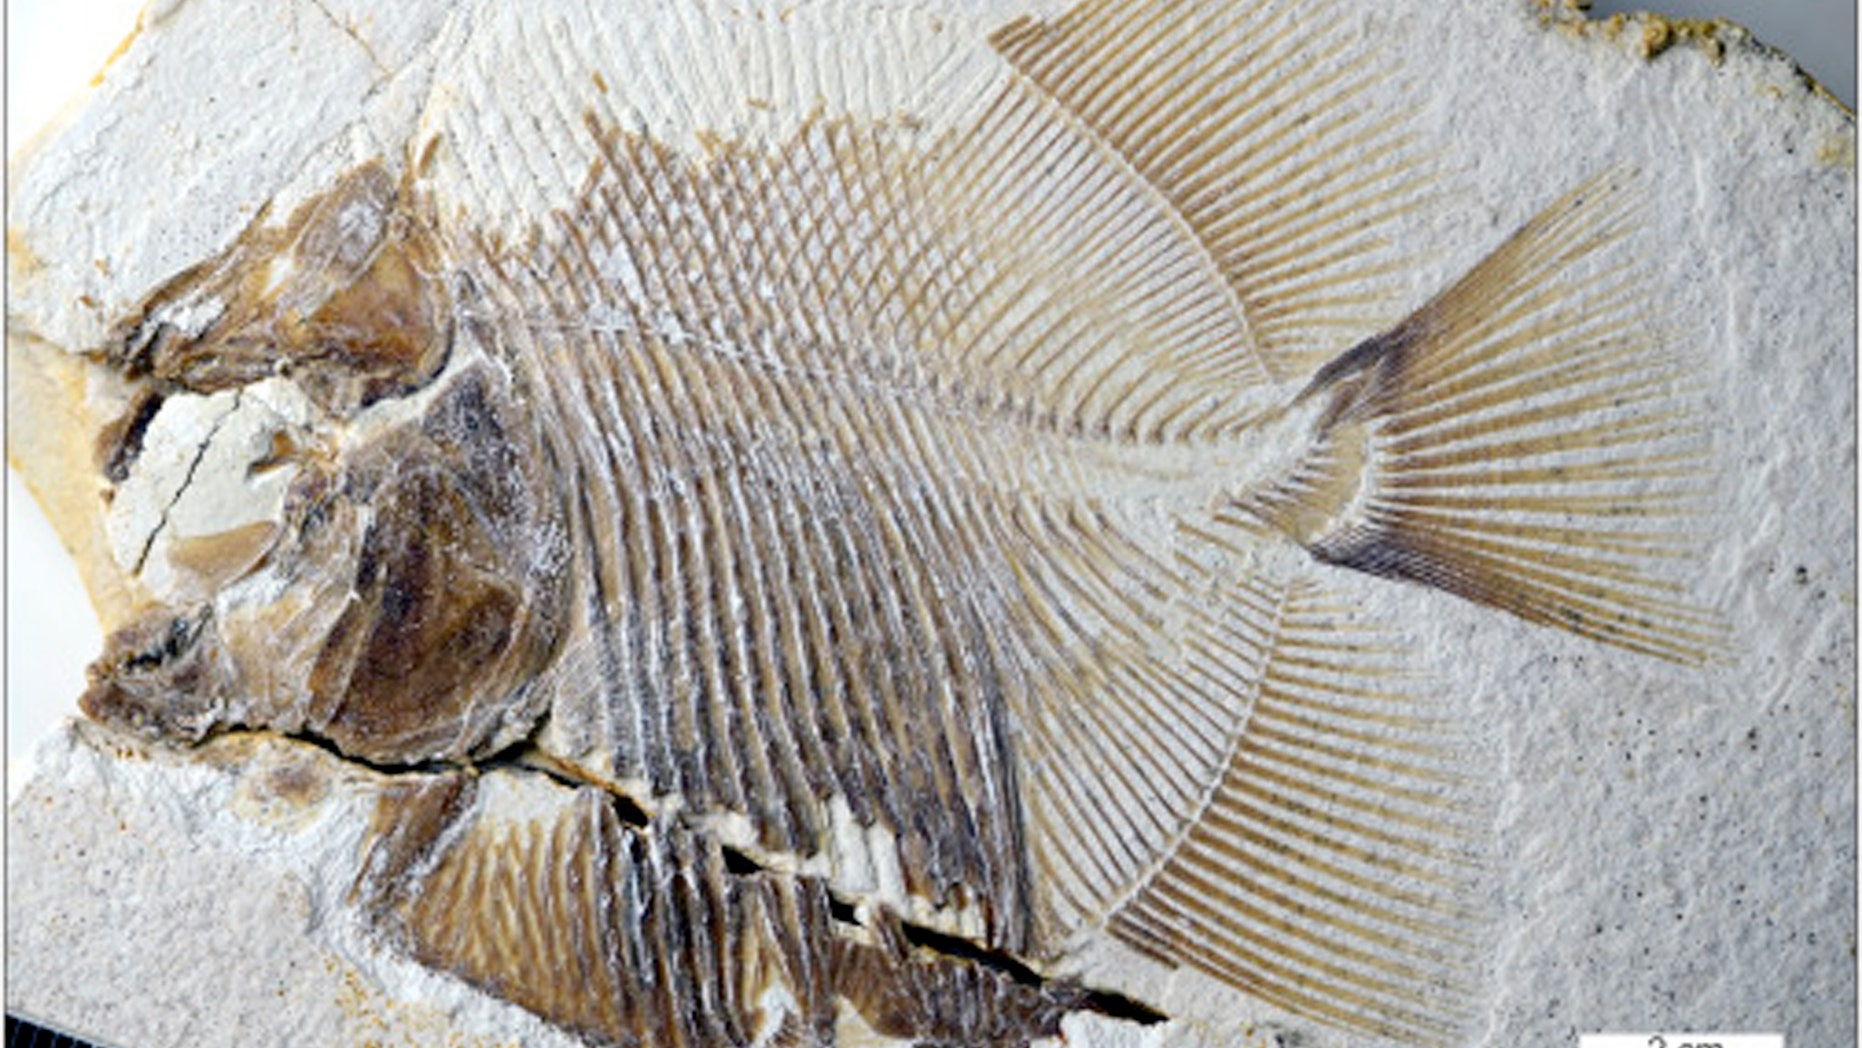 Fossil of piranha-like fish discovered in southern Germany